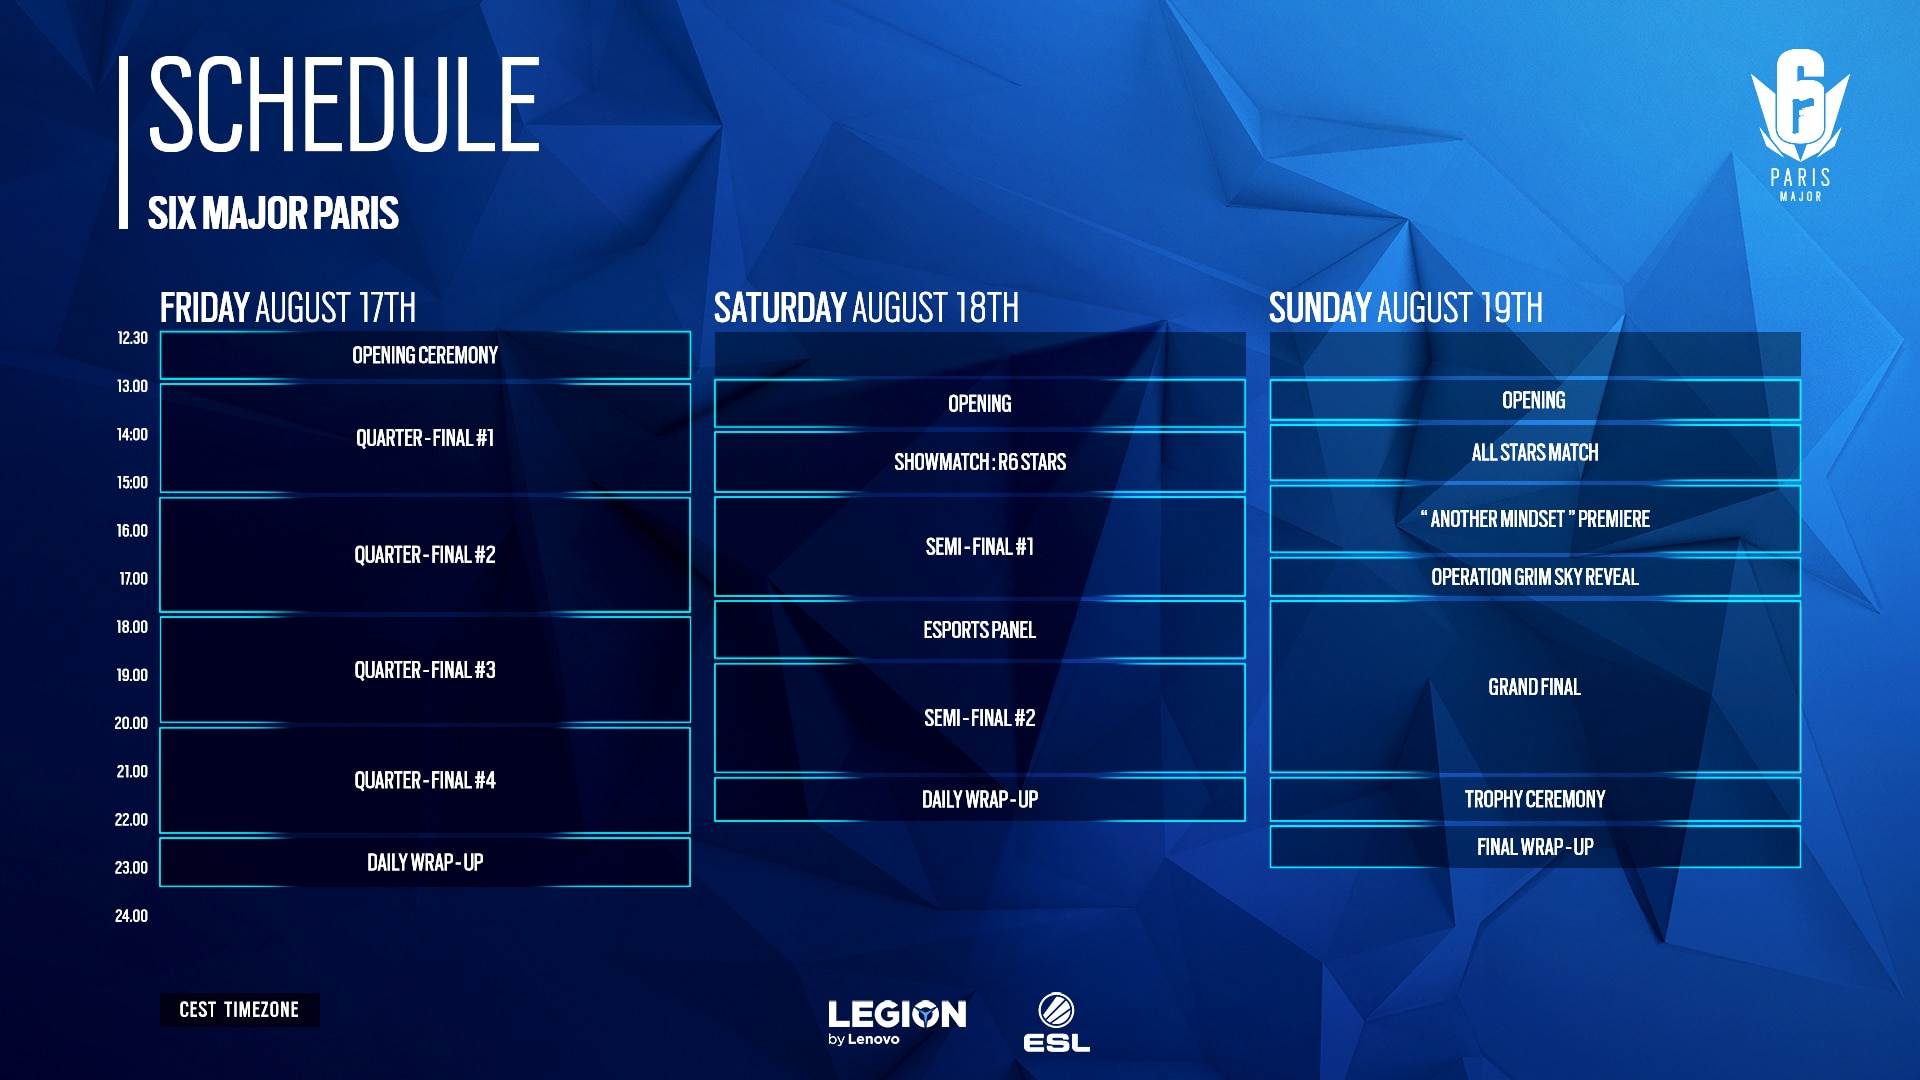 [2018-08-08] Six Major Paris Schedule